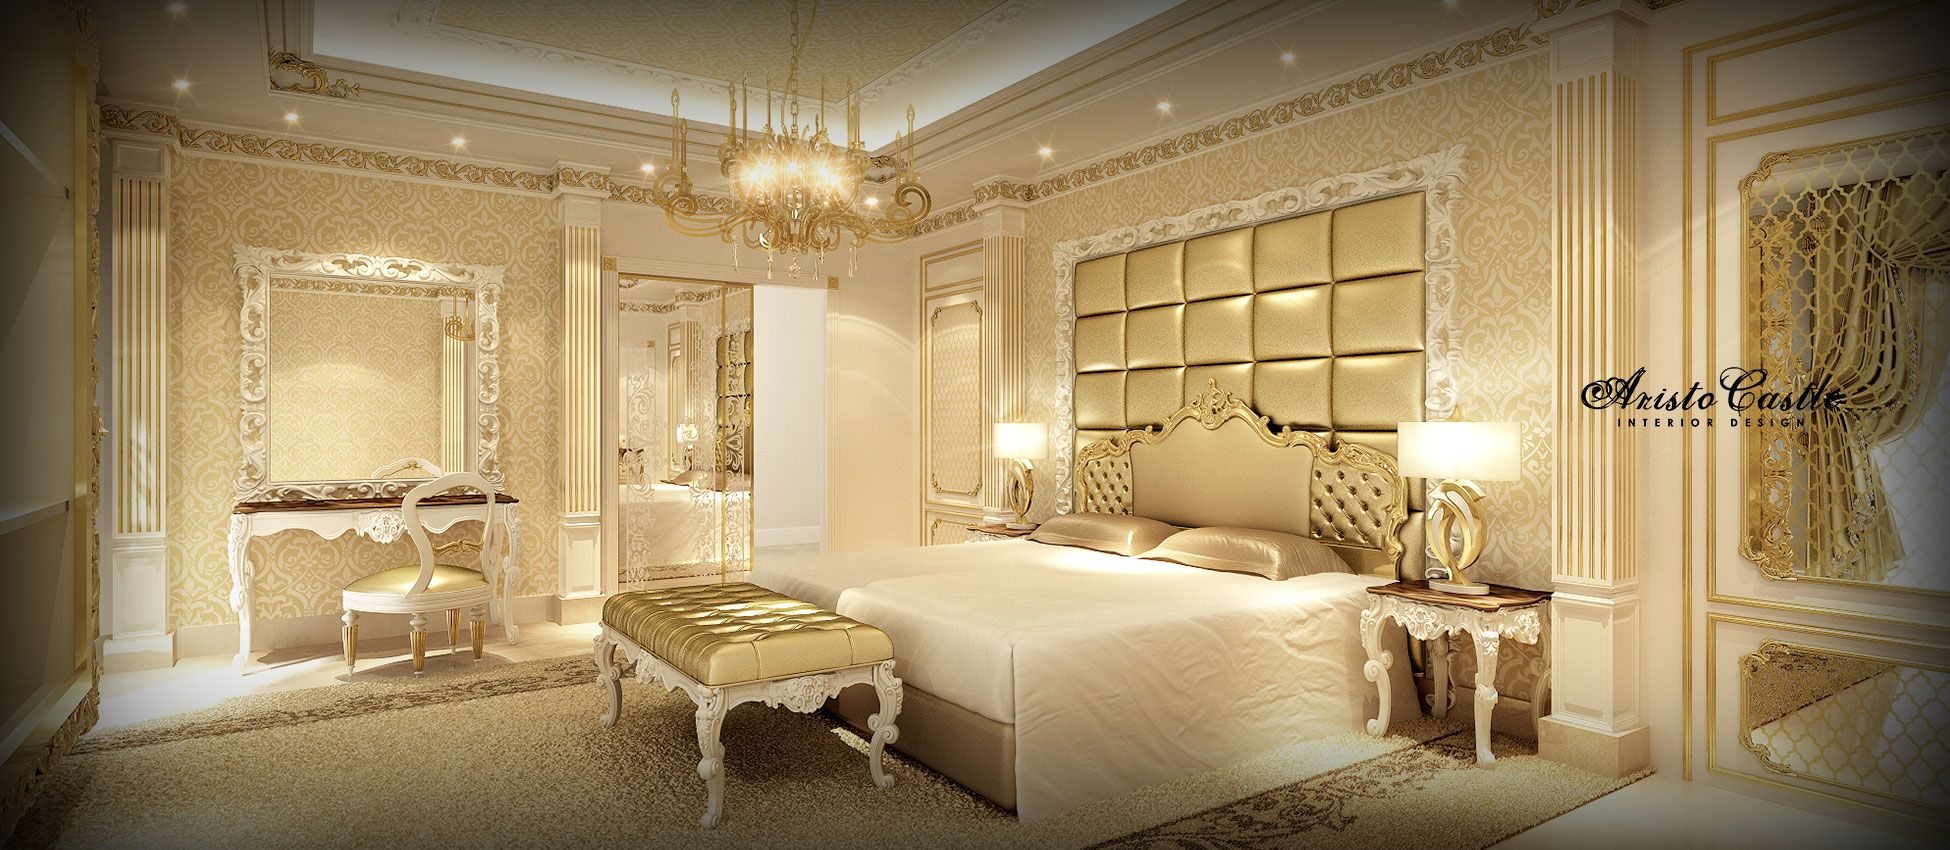 Dubai luxury interior design luxury master bedroom for Bedroom ideas luxury